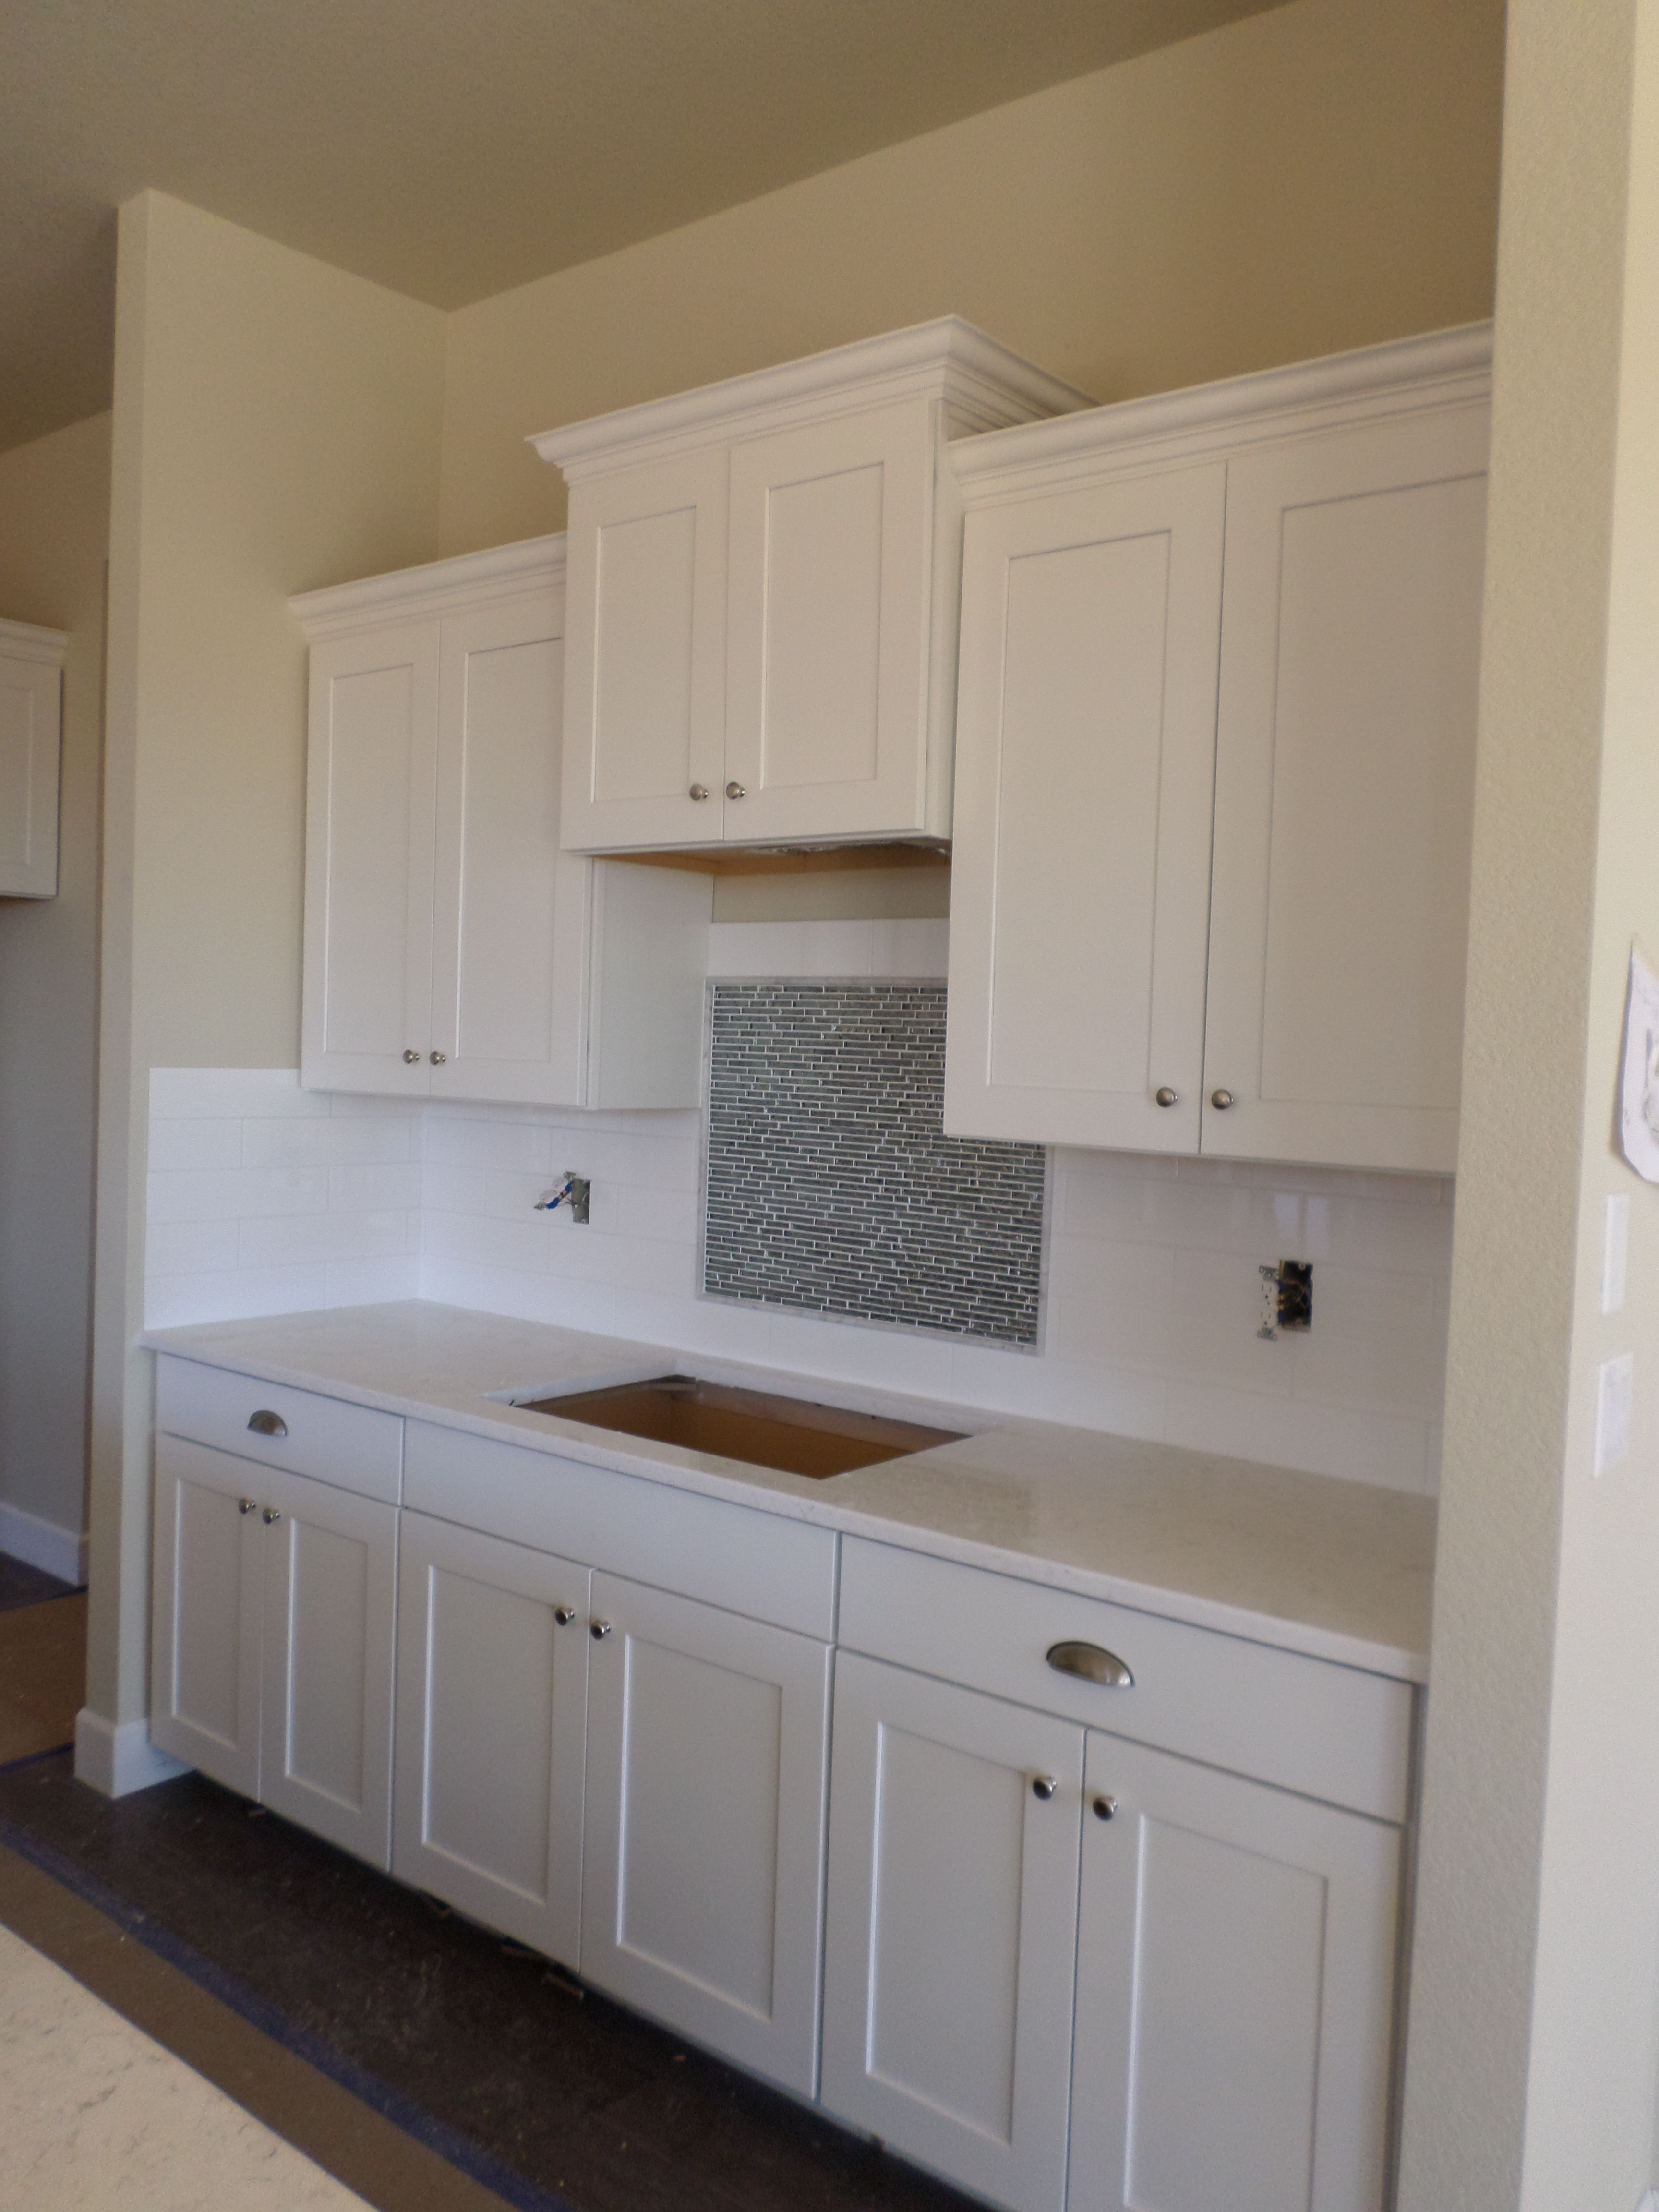 Timberlake New Haven Painted Linen Cabinets Santa Margarita Victoria Countertop And Emser Vogue White Glo Kitchen Remodel Kitchen Renovation Kitchen Cabinetry